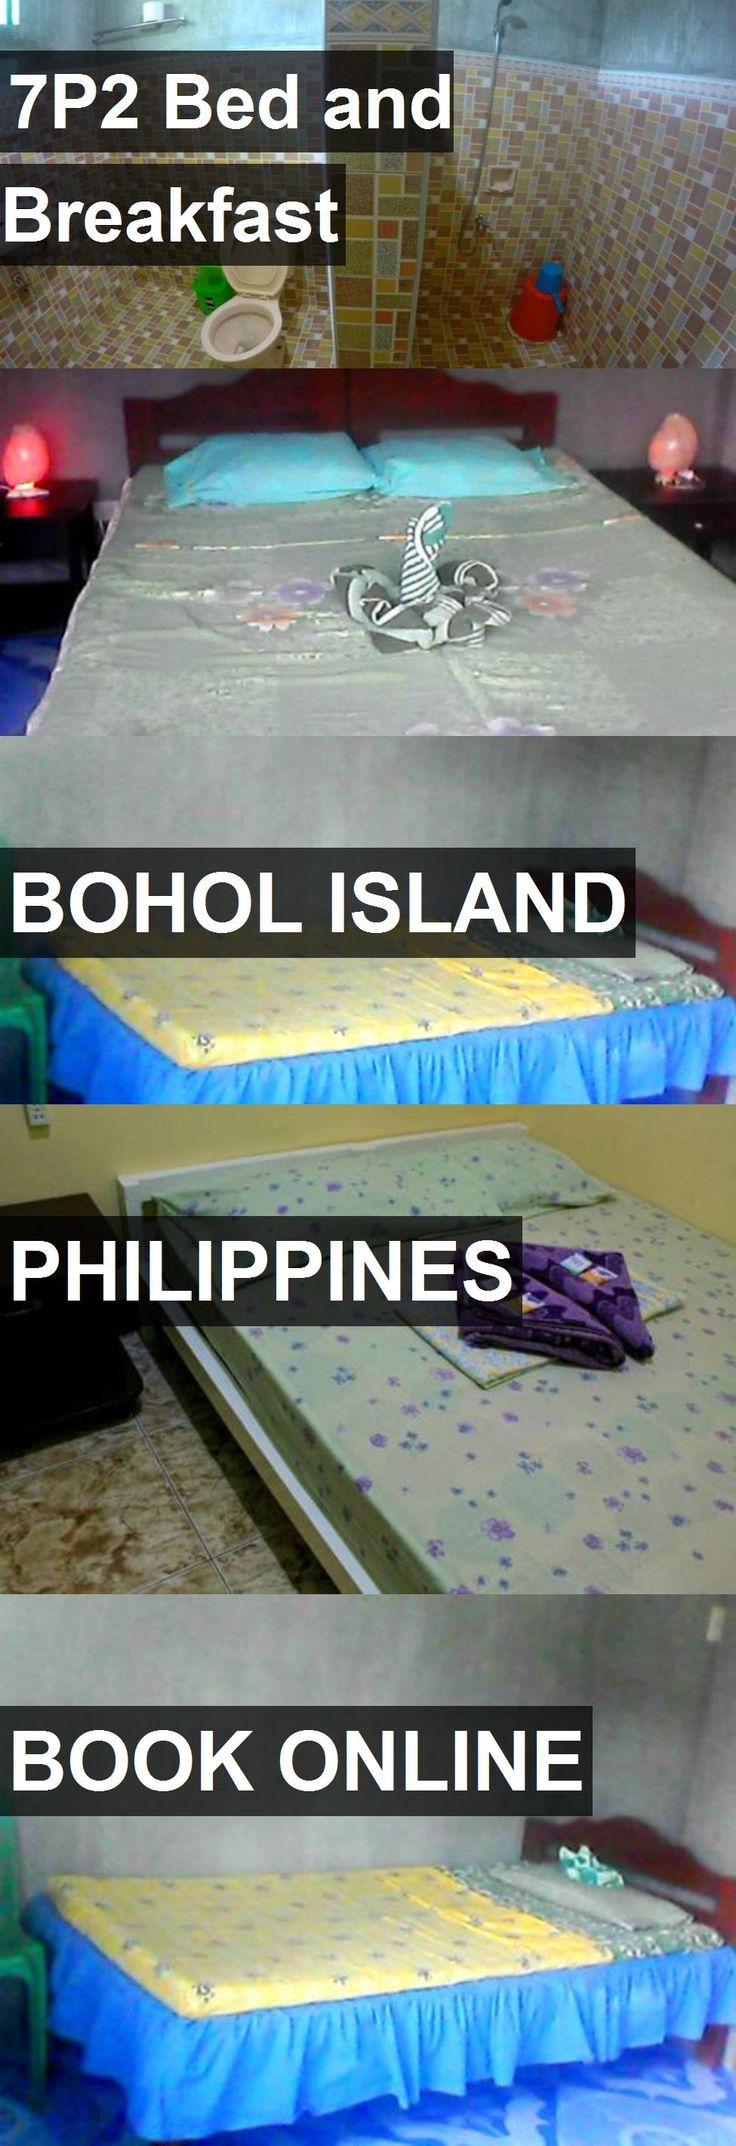 Hotel 7P2 Bed and Breakfast in Bohol Island, Philippines. For more information, photos, reviews and best prices please follow the link. #Philippines #BoholIsland #travel #vacation #hotel